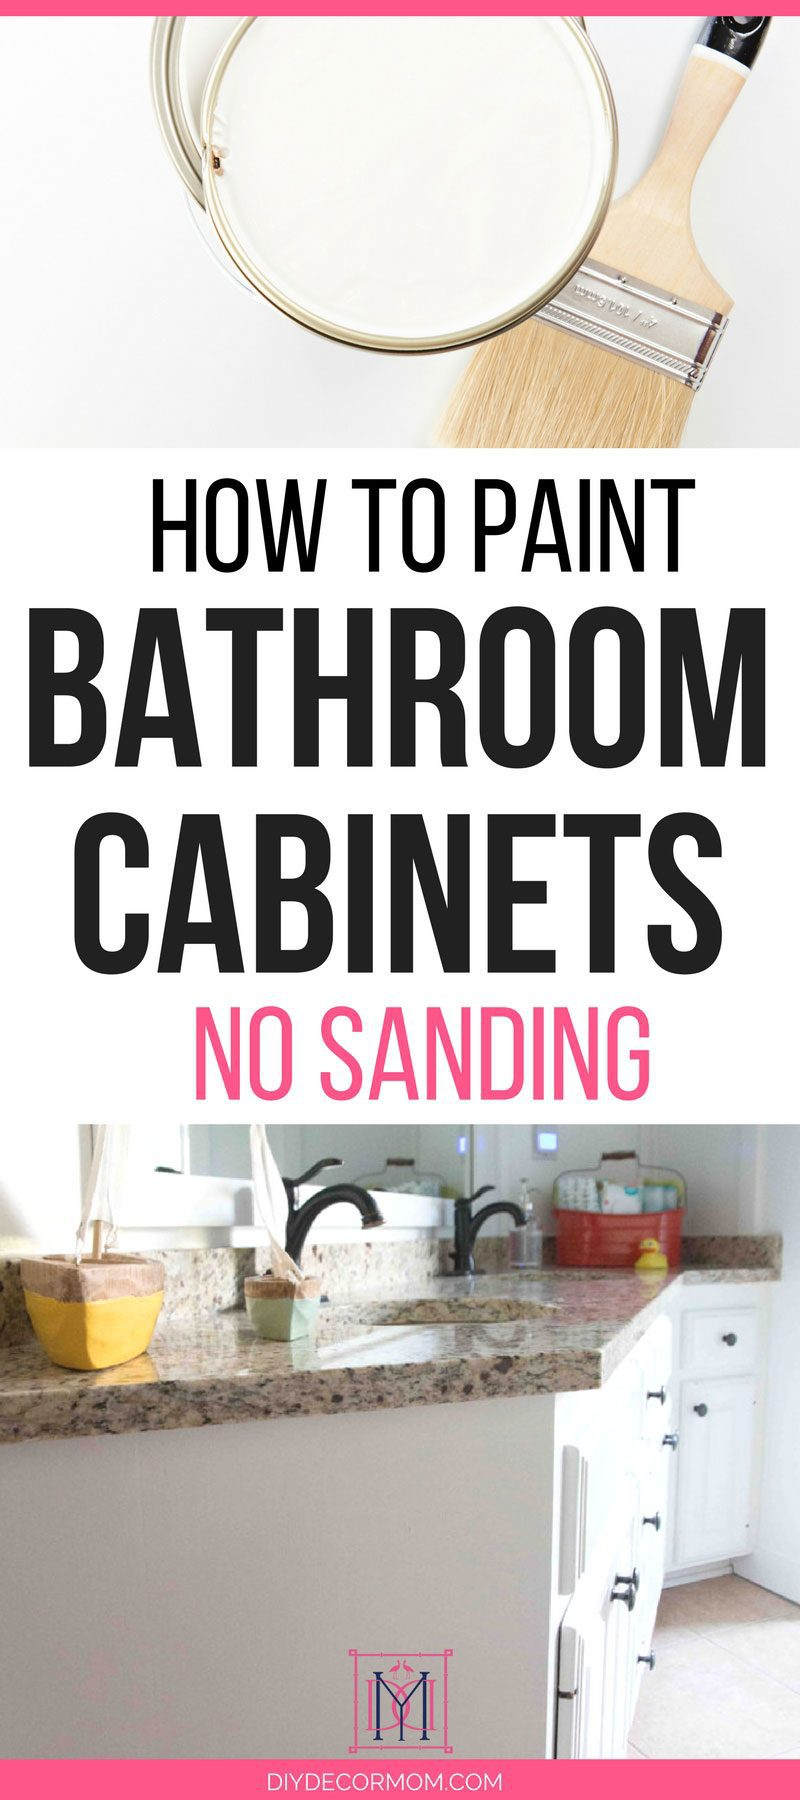 How To Paint Bathroom Cabinets Why You Shouldn T Sand